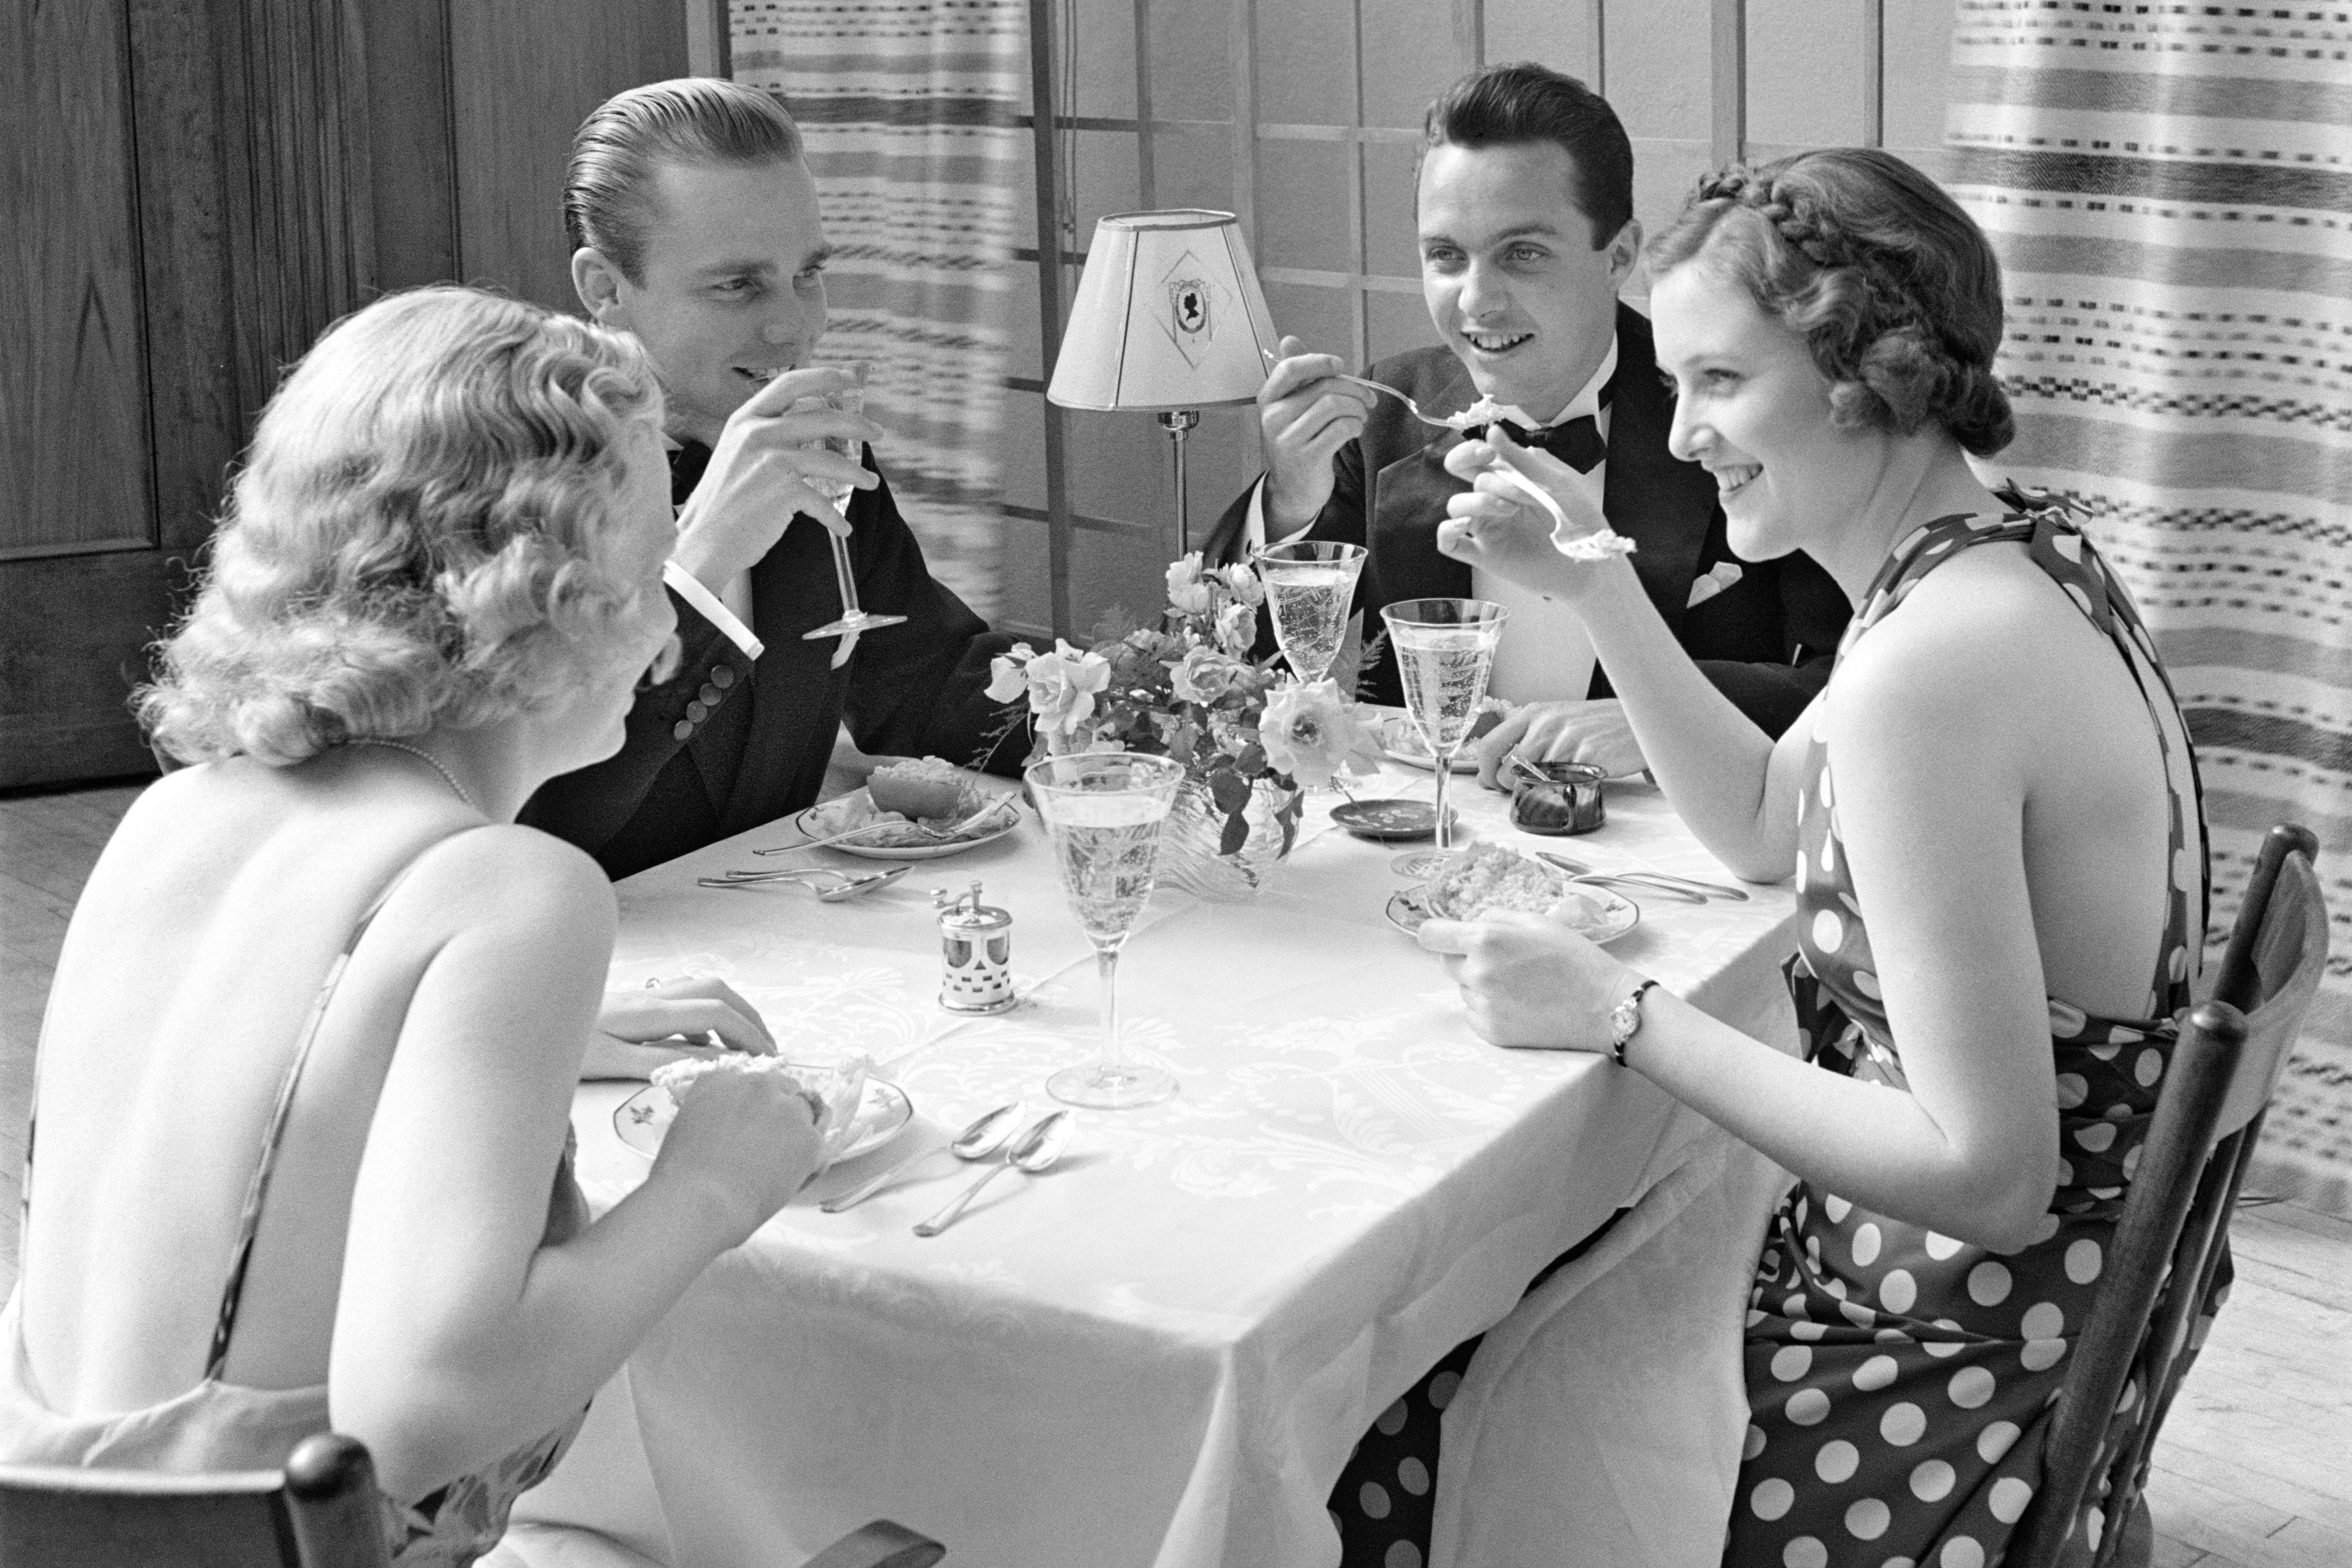 WATCH: An Etiquette Expert Weighs In: This Is The Proper Time To Exit a Dinner Party